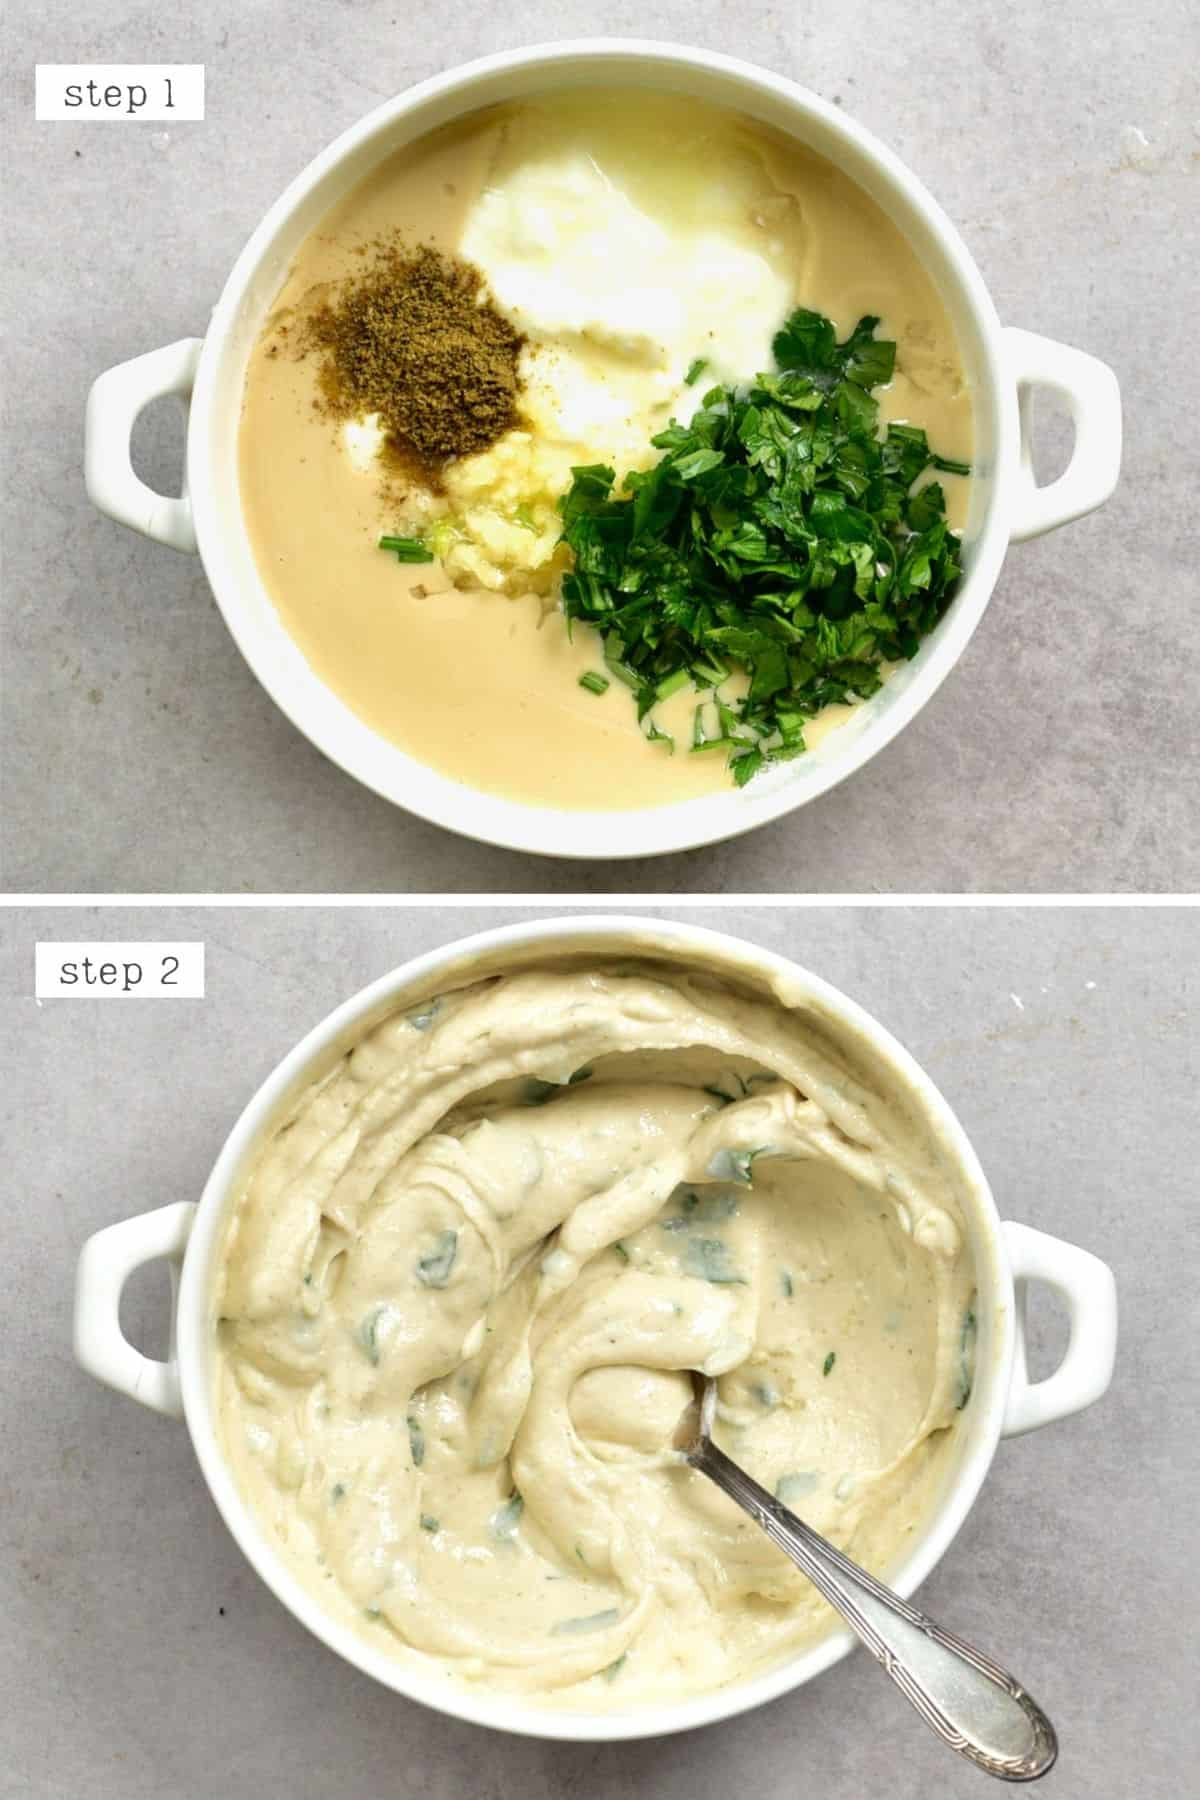 Steps for mixing tahini sauce